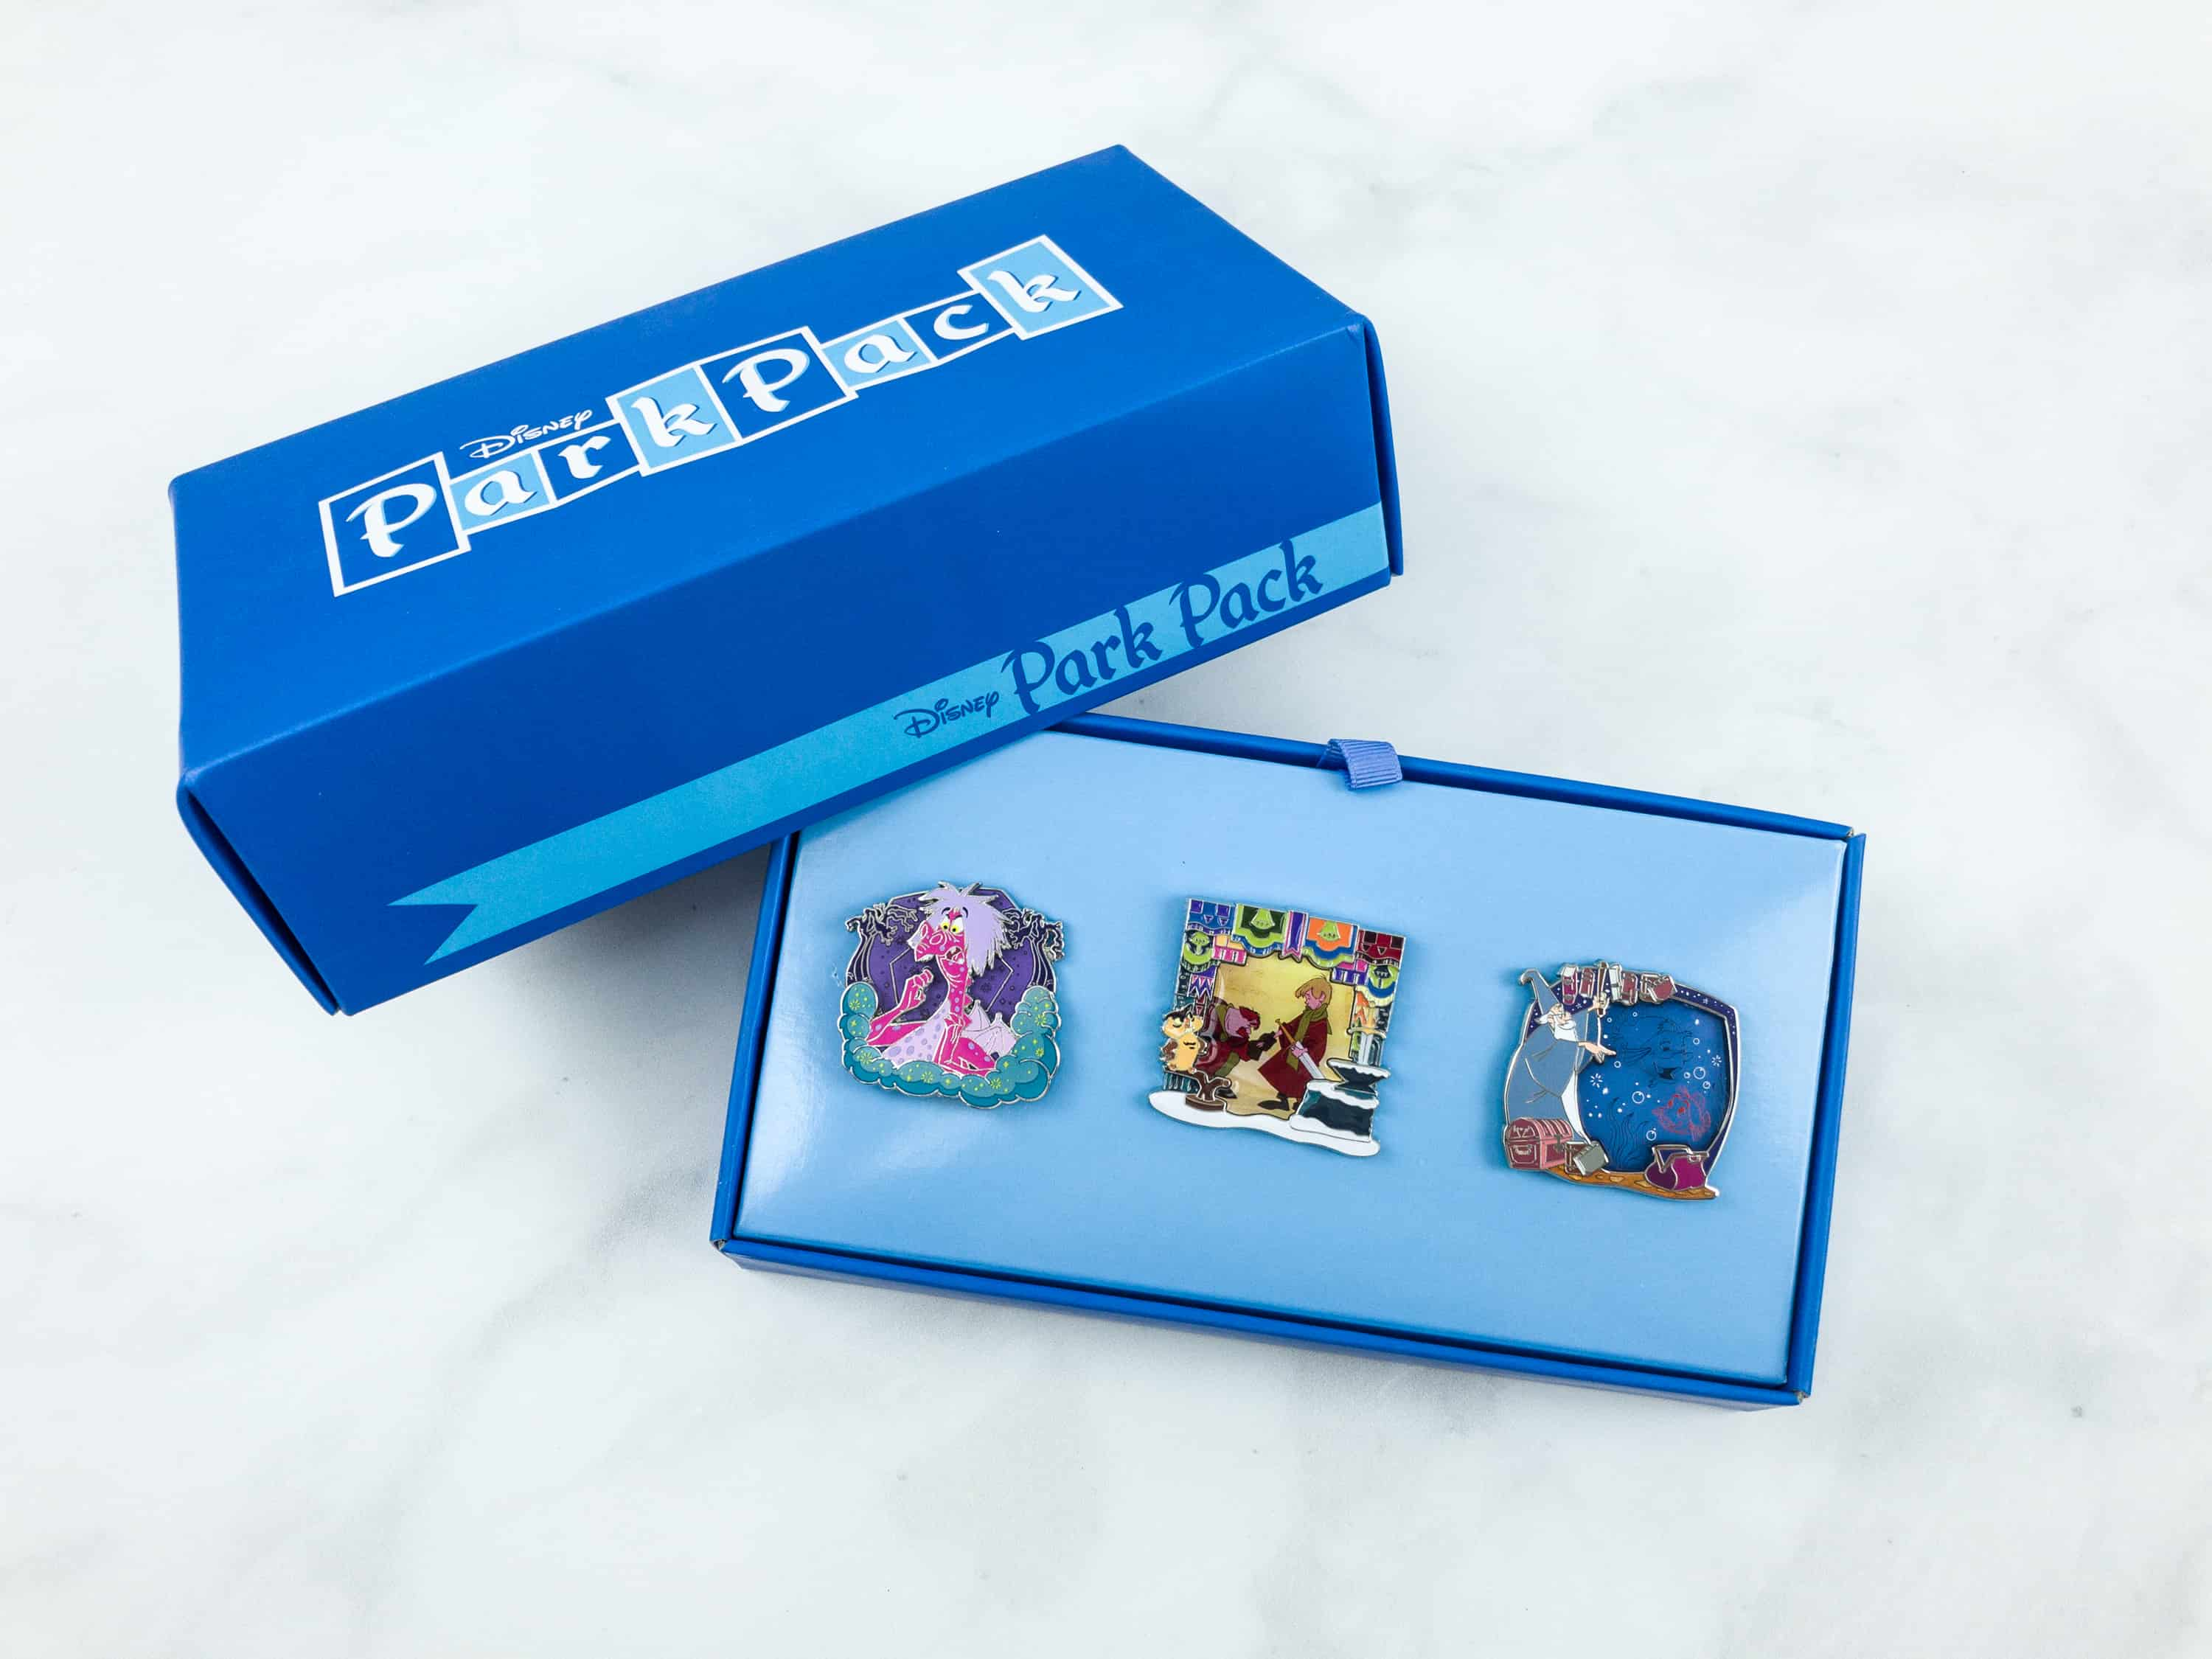 Disney Park Pack Pin Edition 3.0 September 2018 Subscription Box Review